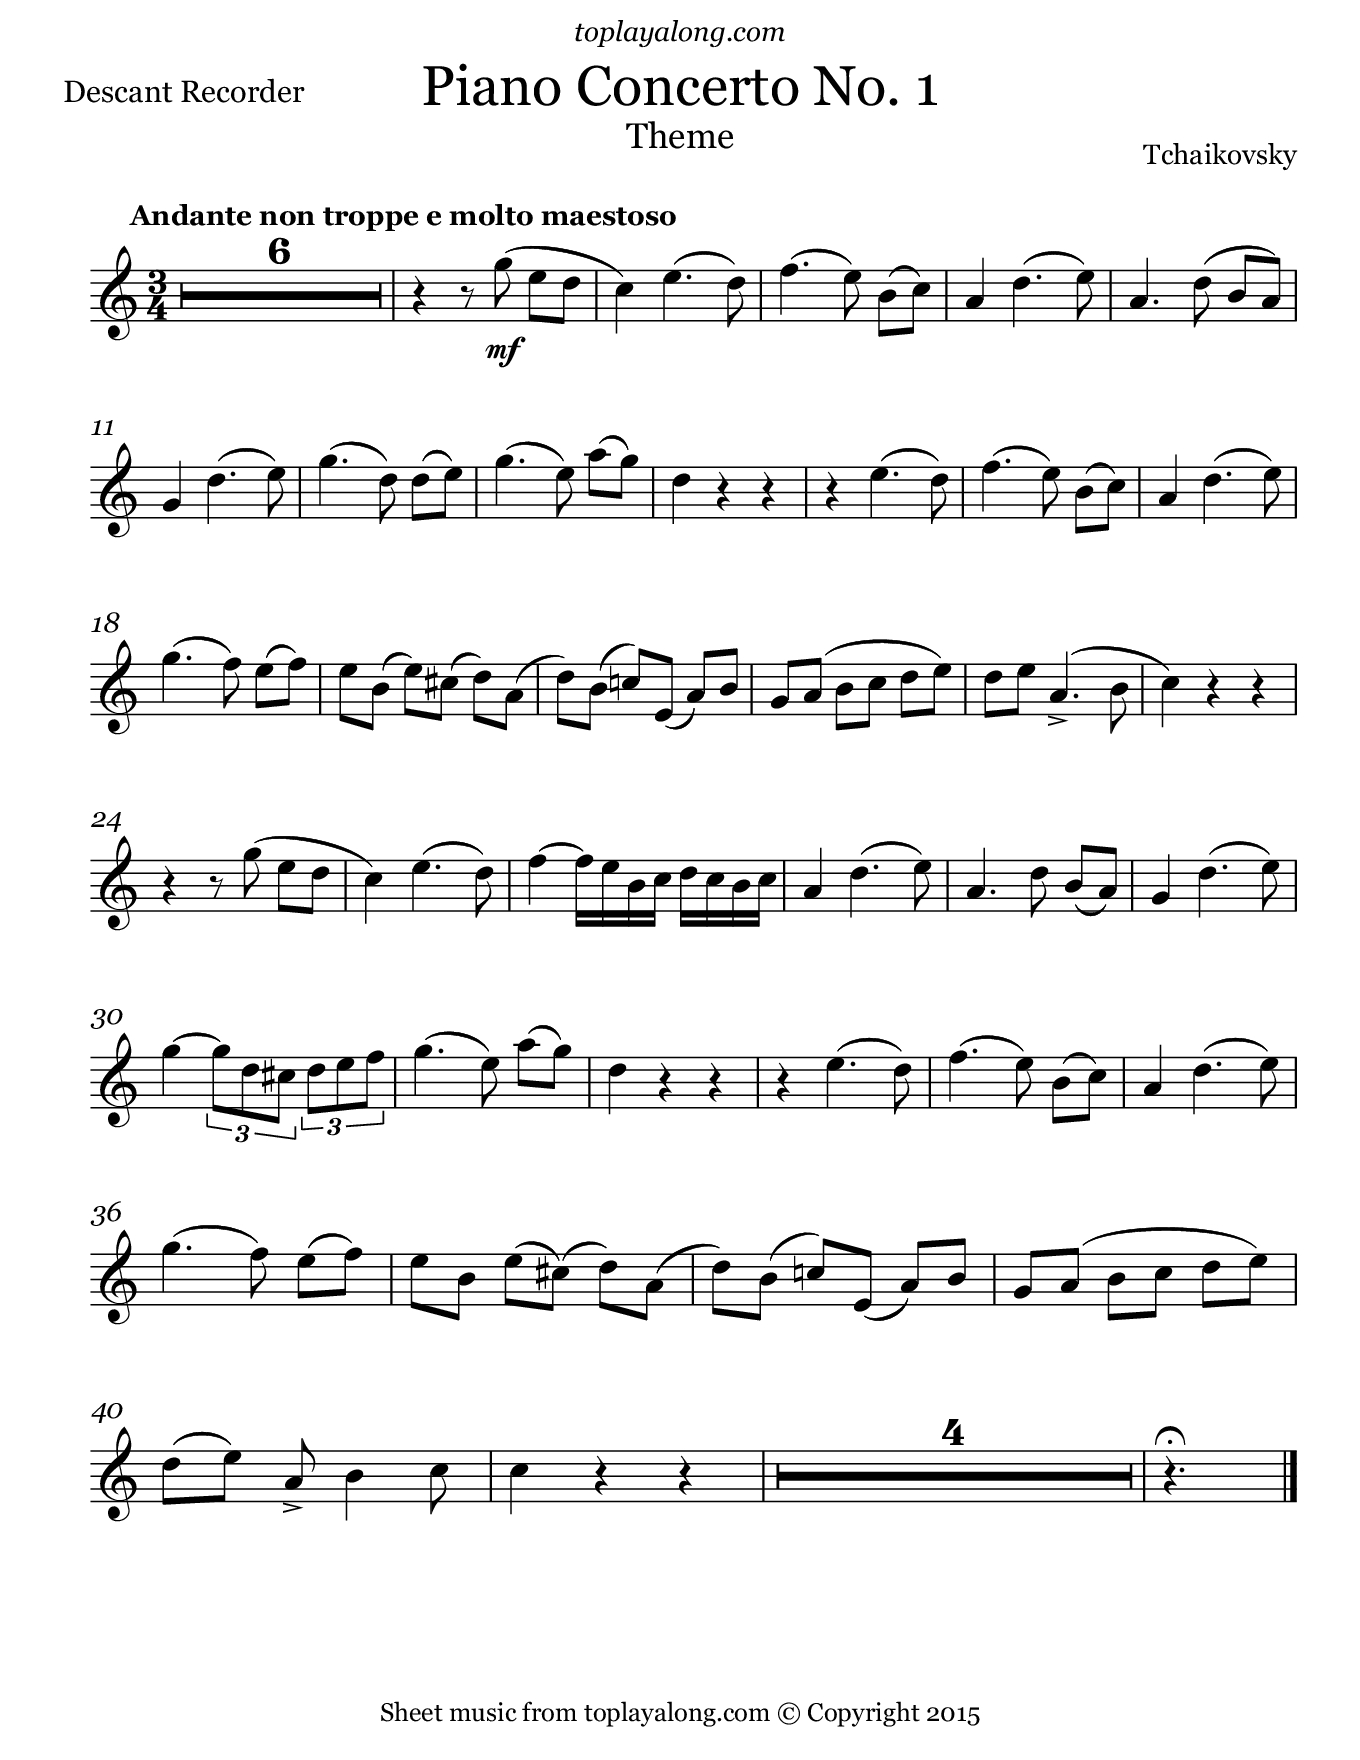 Theme from Piano Concerto No. 1 by Tchaikovsky. Sheet music for Recorder, page 1.